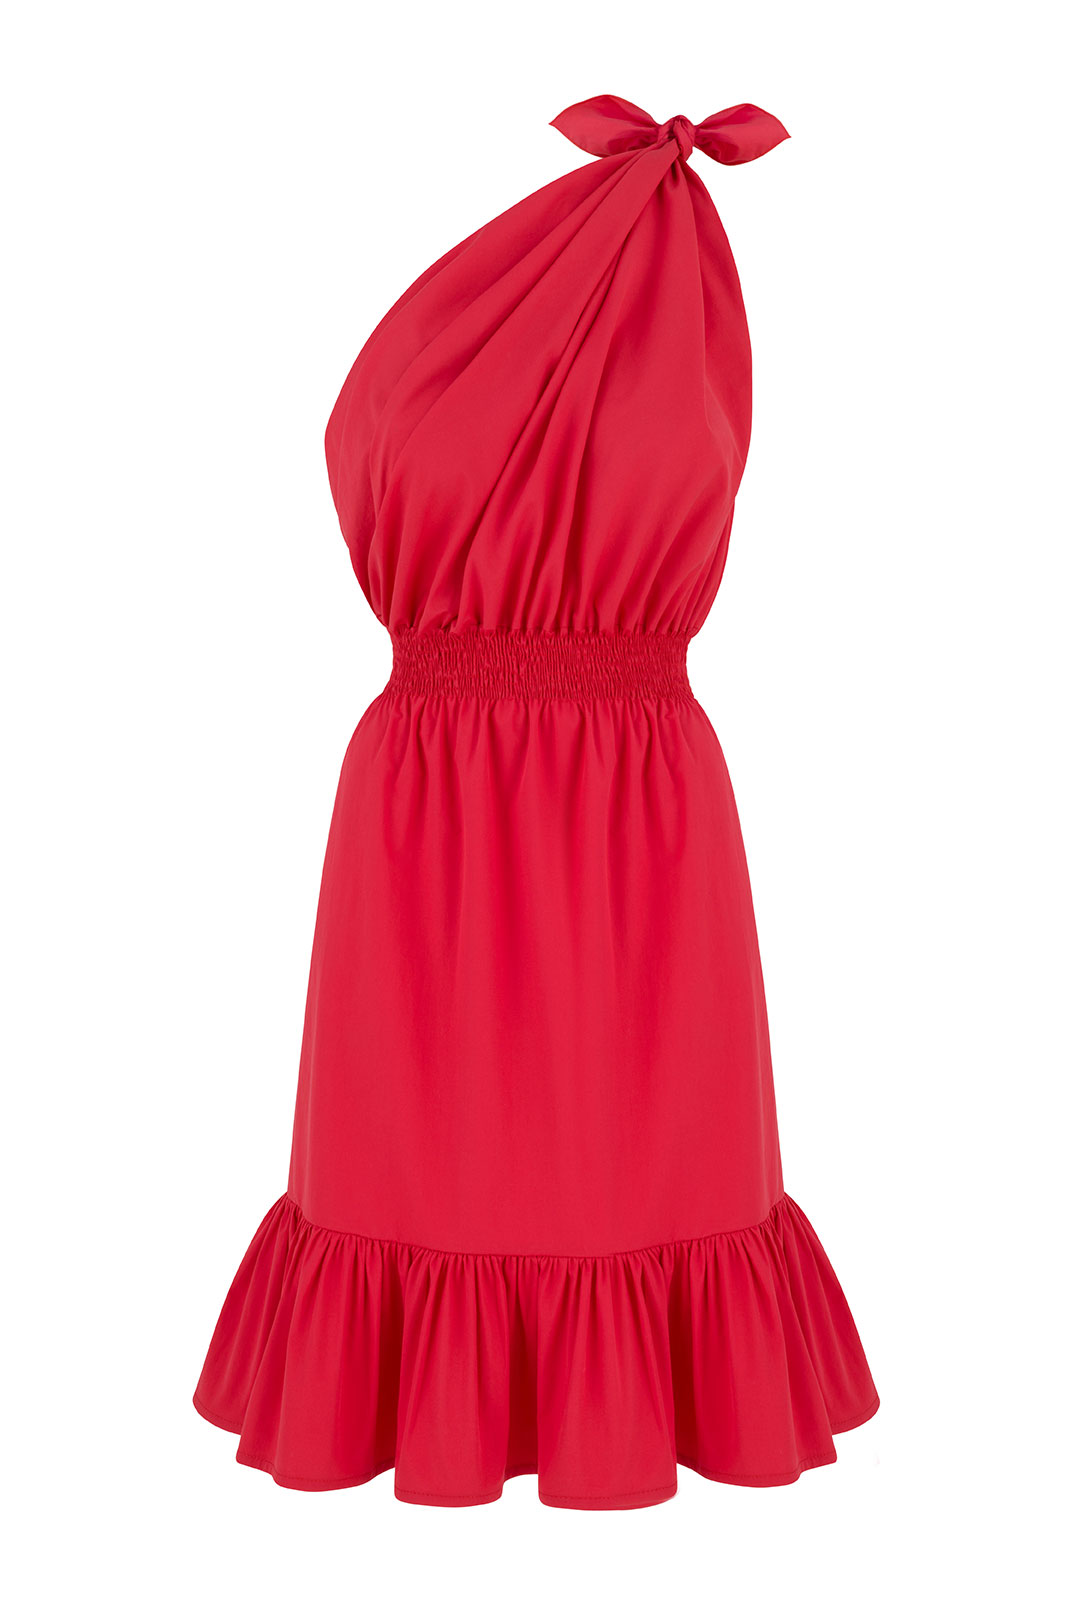 Demi One Shoulder Red Dress by Monica Nera on curated-crowd.com